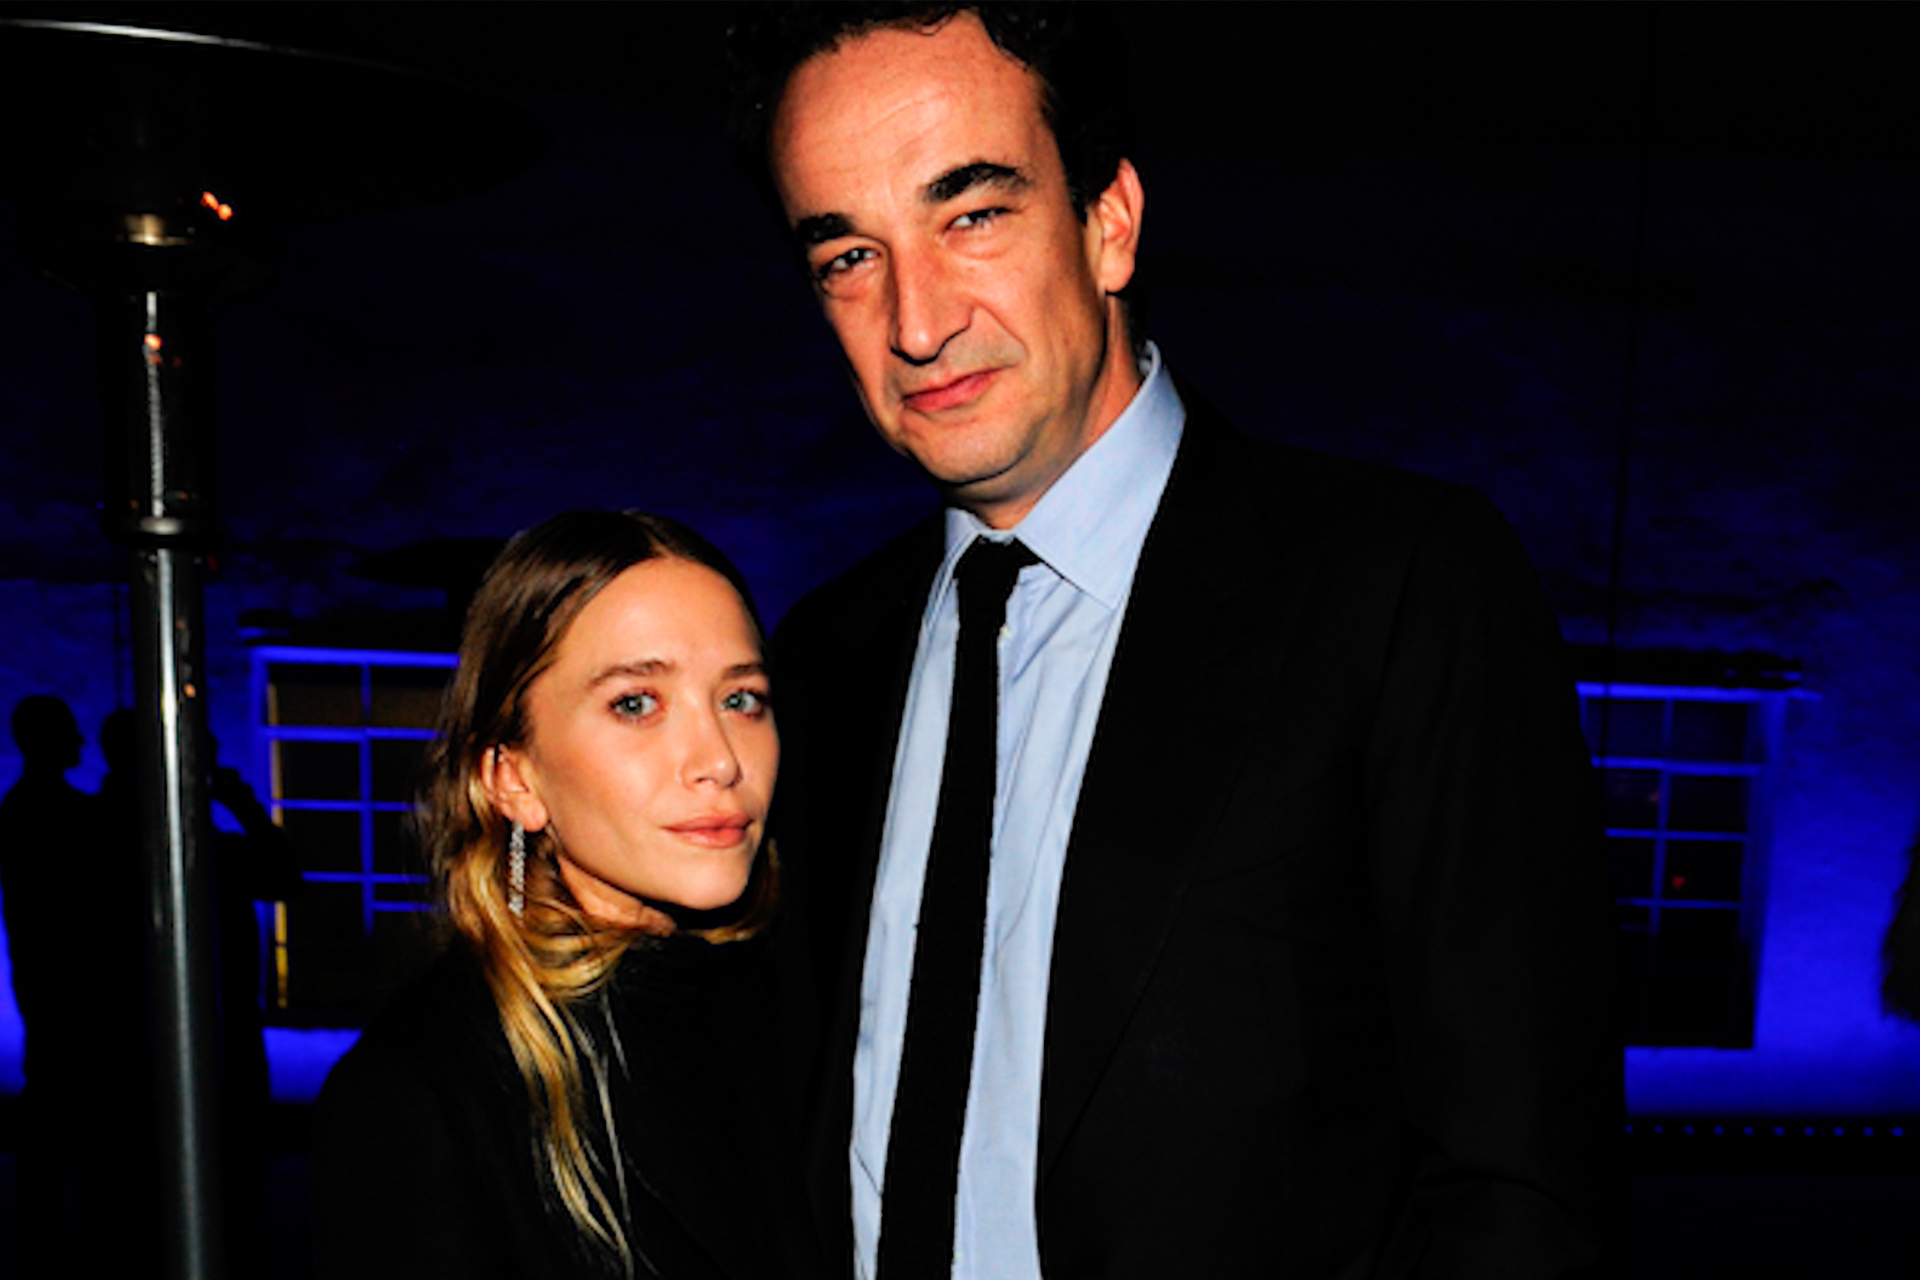 People Now: All the Details on Mary-Kate Olsen's Reported Emergency Divorce Request From Olivier Sarkozy - Watch the Full Episode